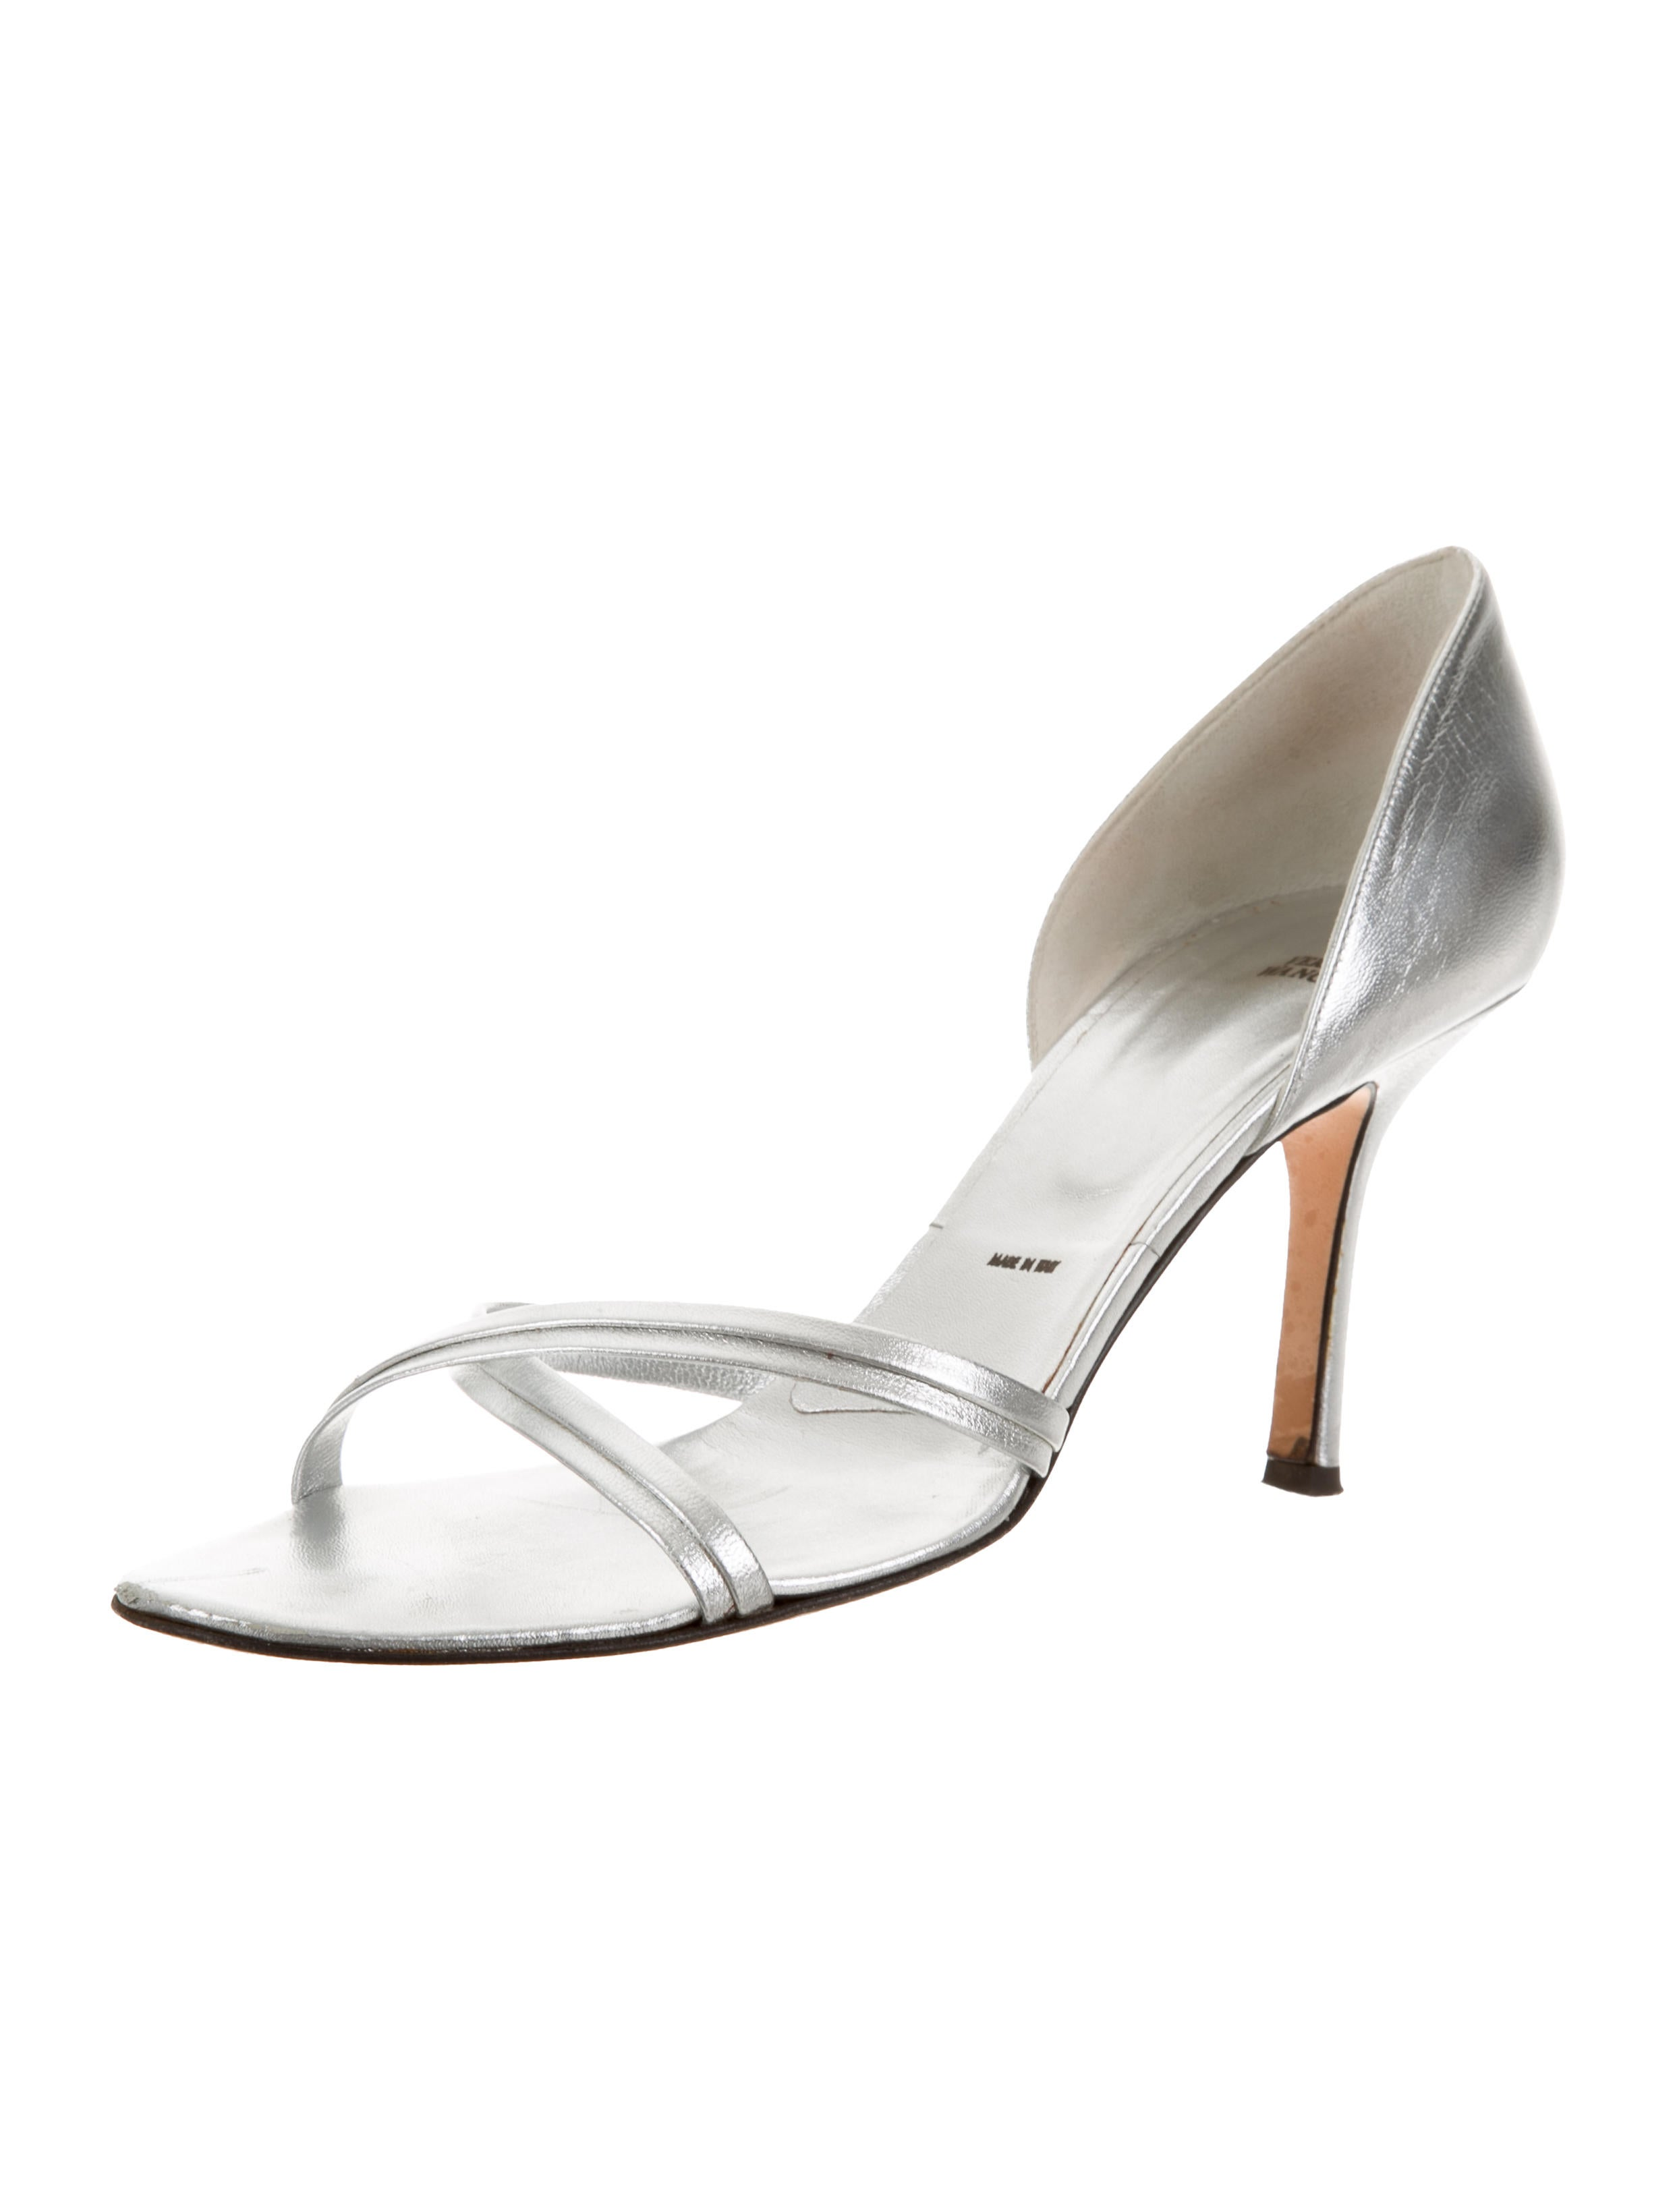 Vera Wang Leather Round-Toe Sandals 100% authentic for sale outlet store cheap online discount clearance Y13tNs